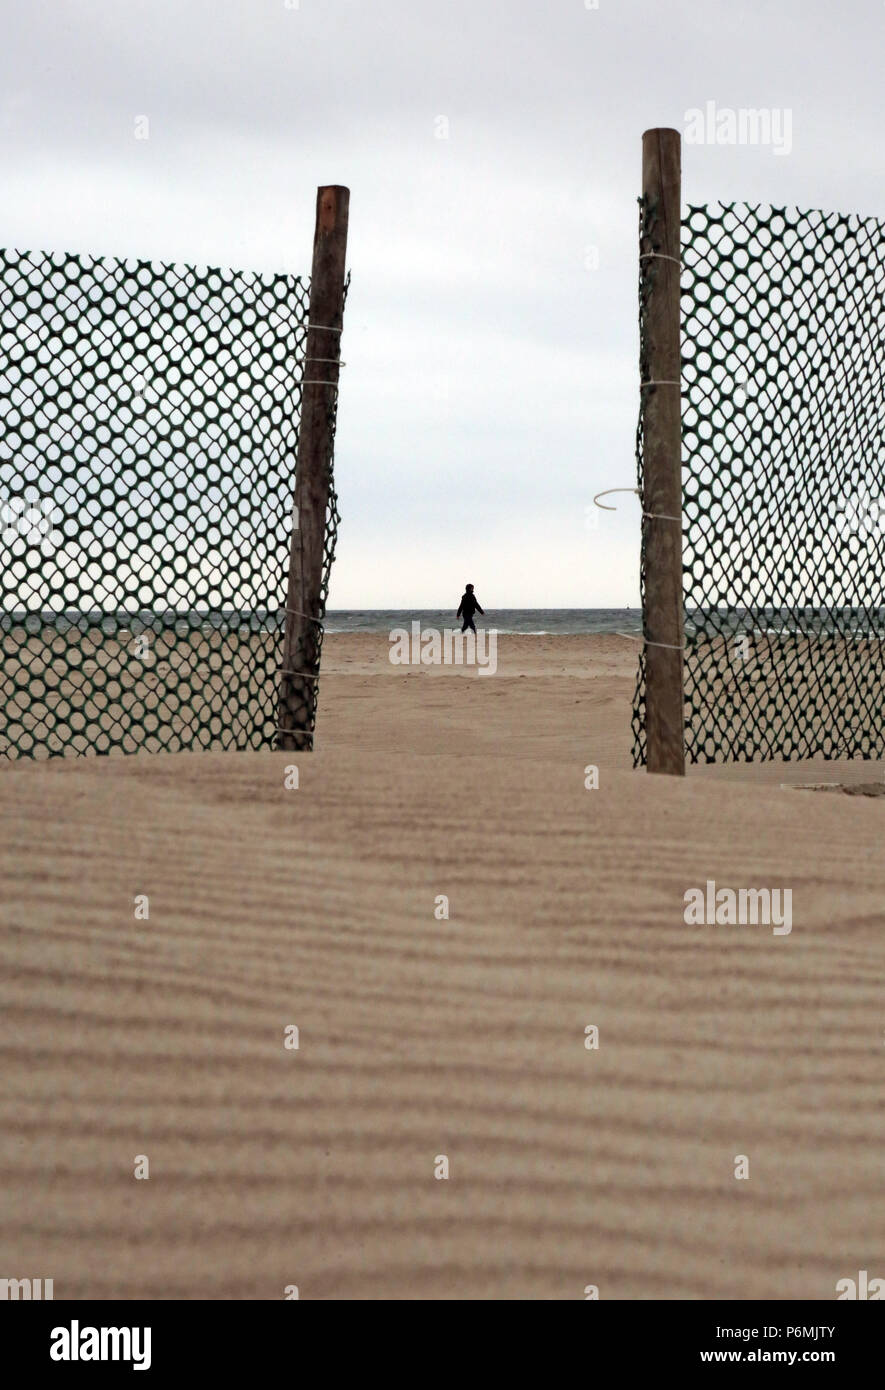 Warnemuende, woman runs in bad weather along the beach - Stock Image